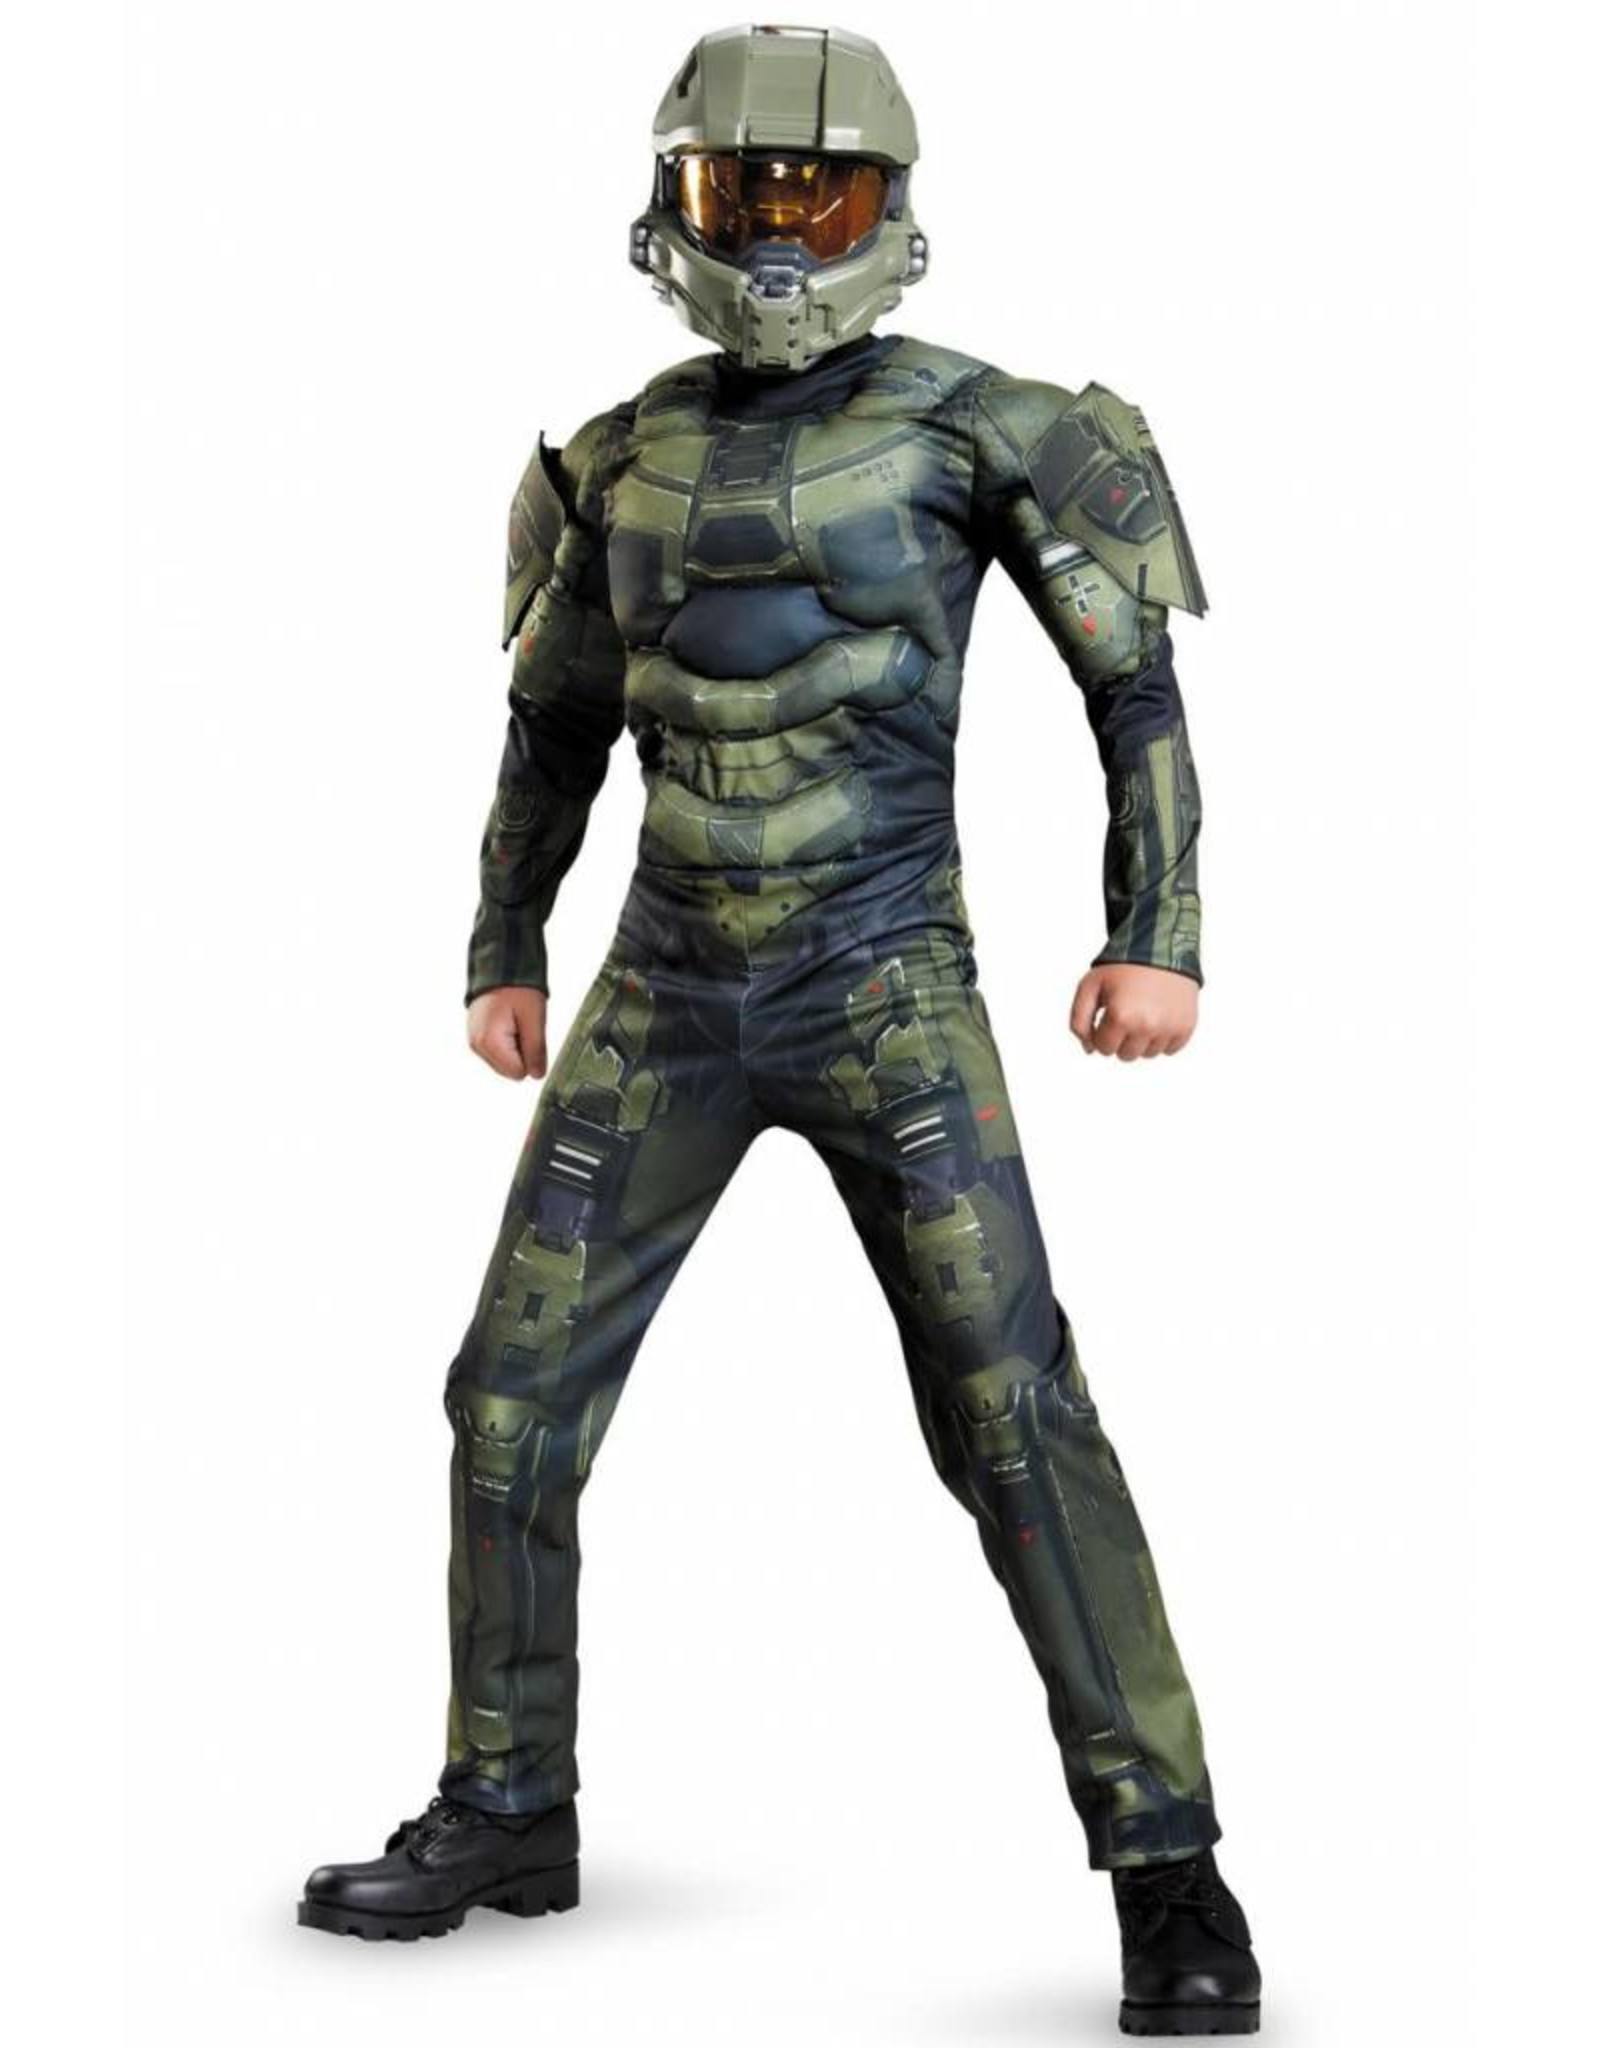 Disguise Master Chief